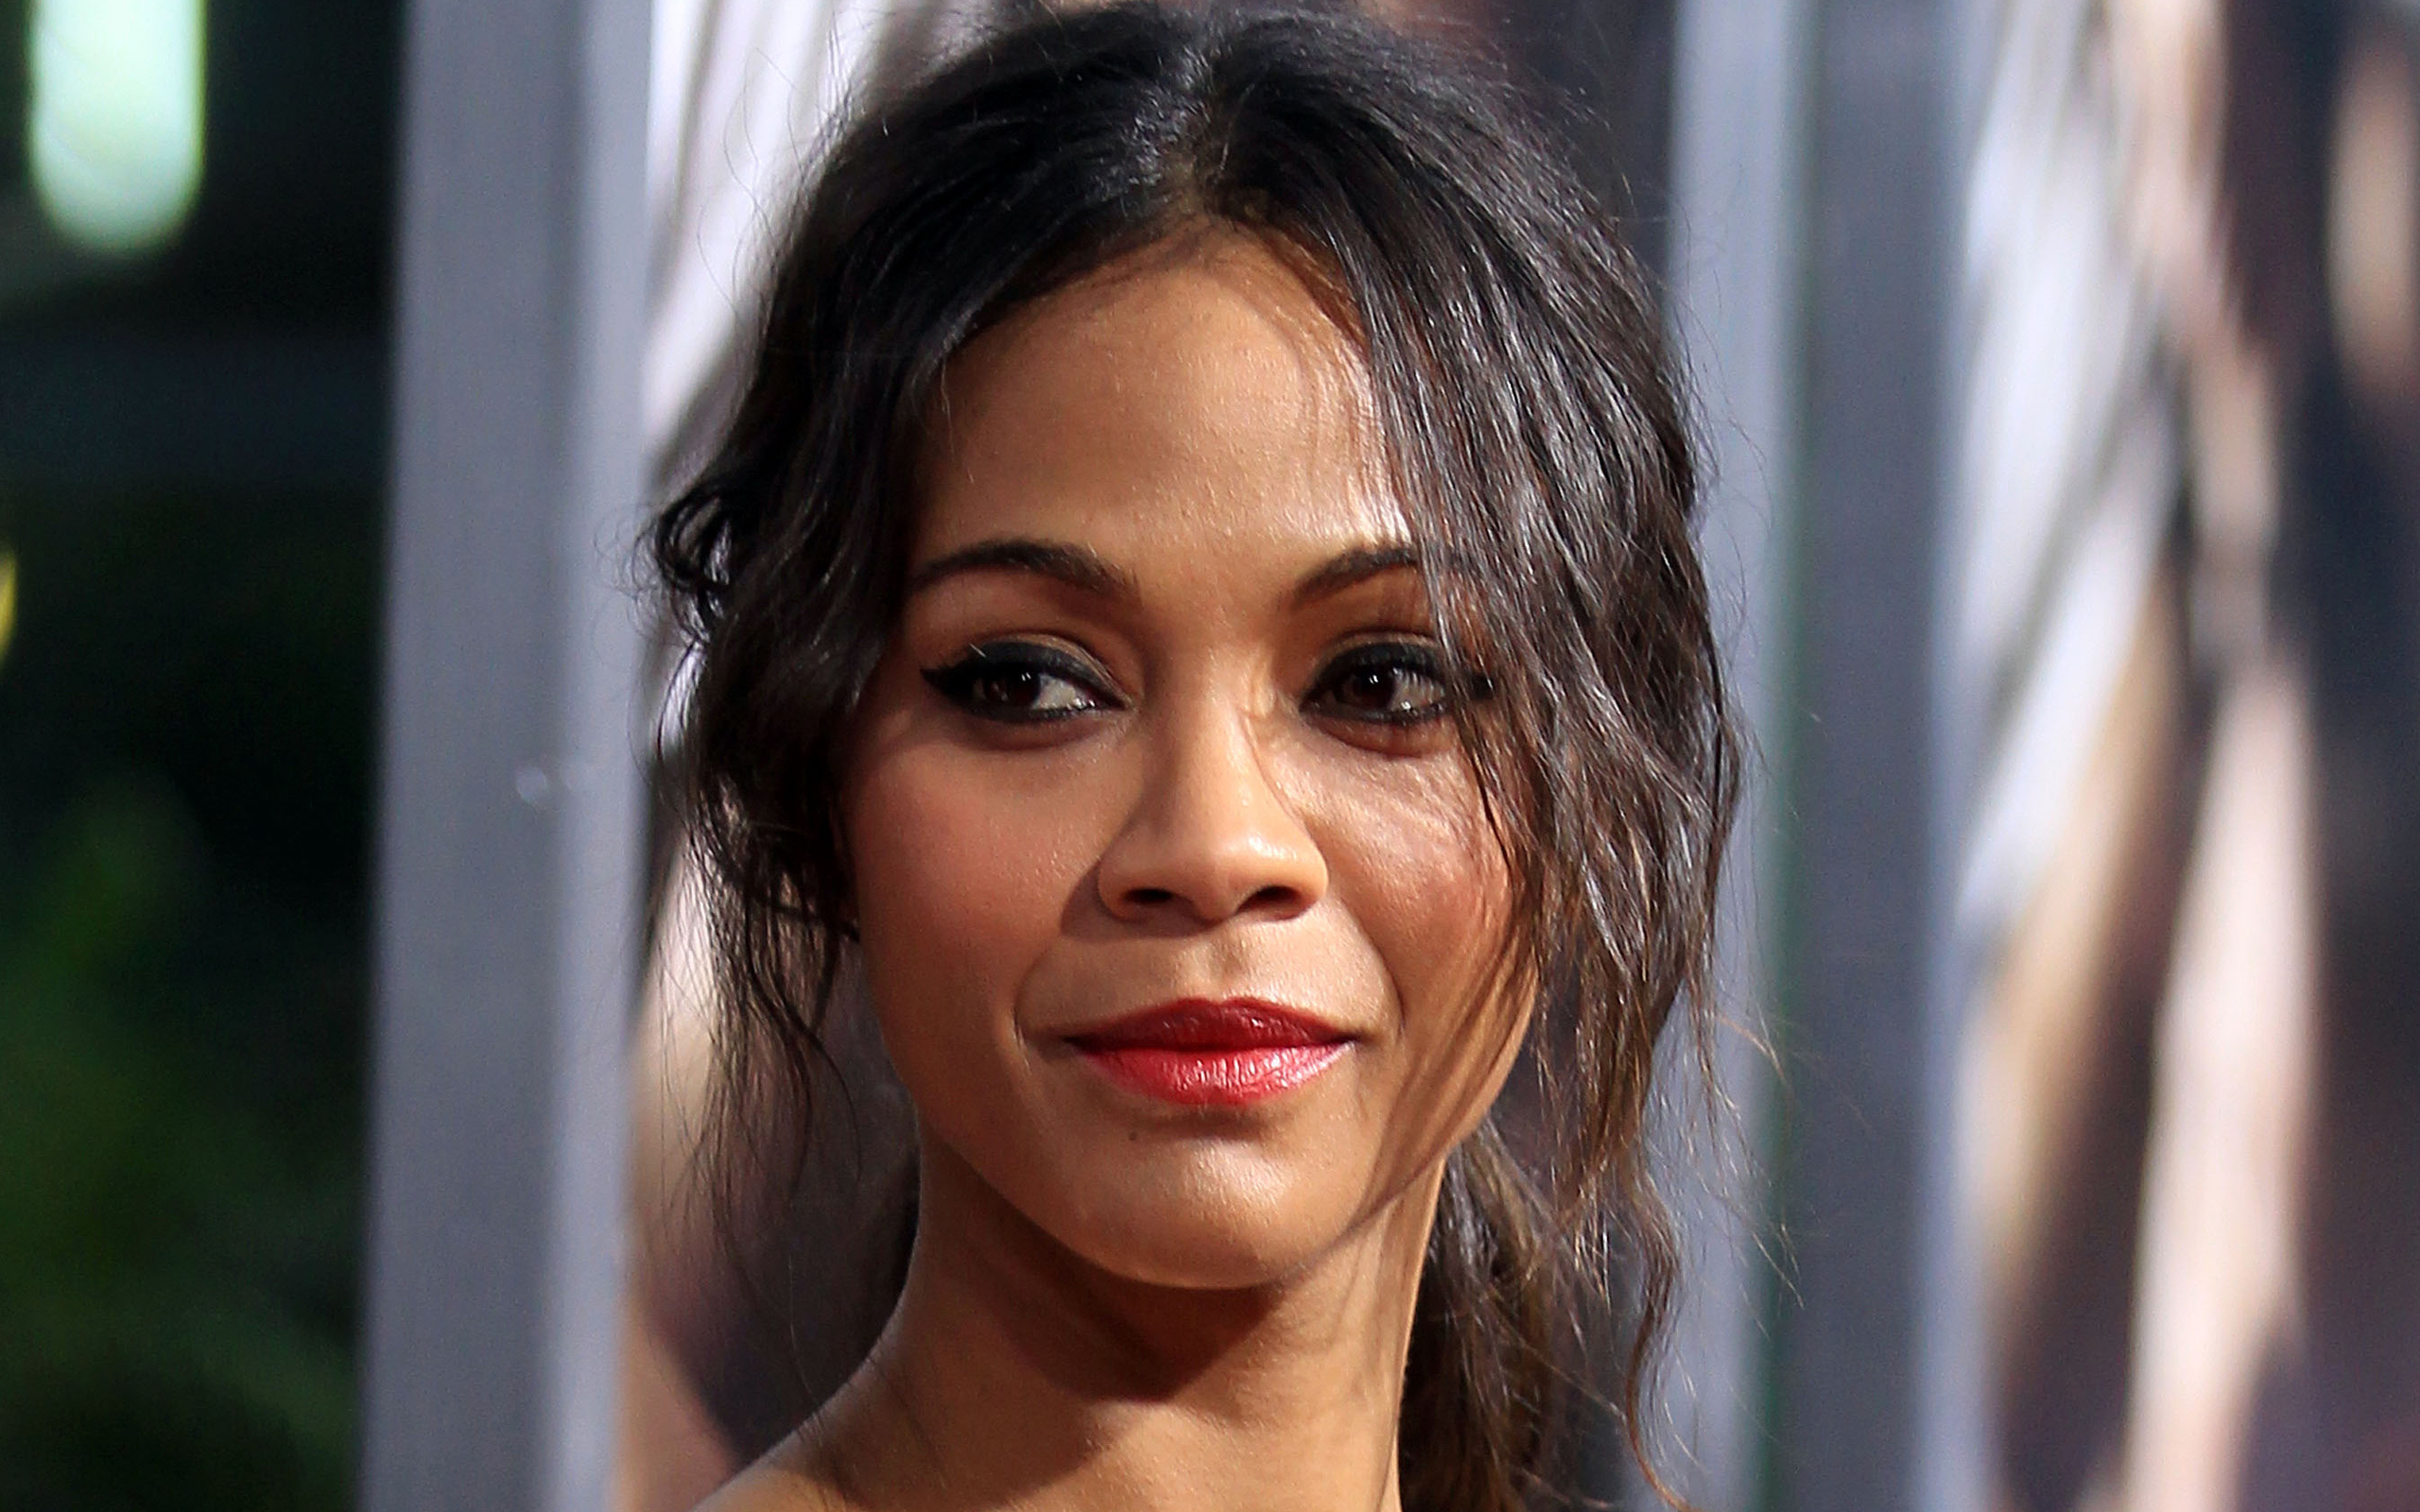 Zoe saldana wallpapers pictures images - Zoe wallpaper ...